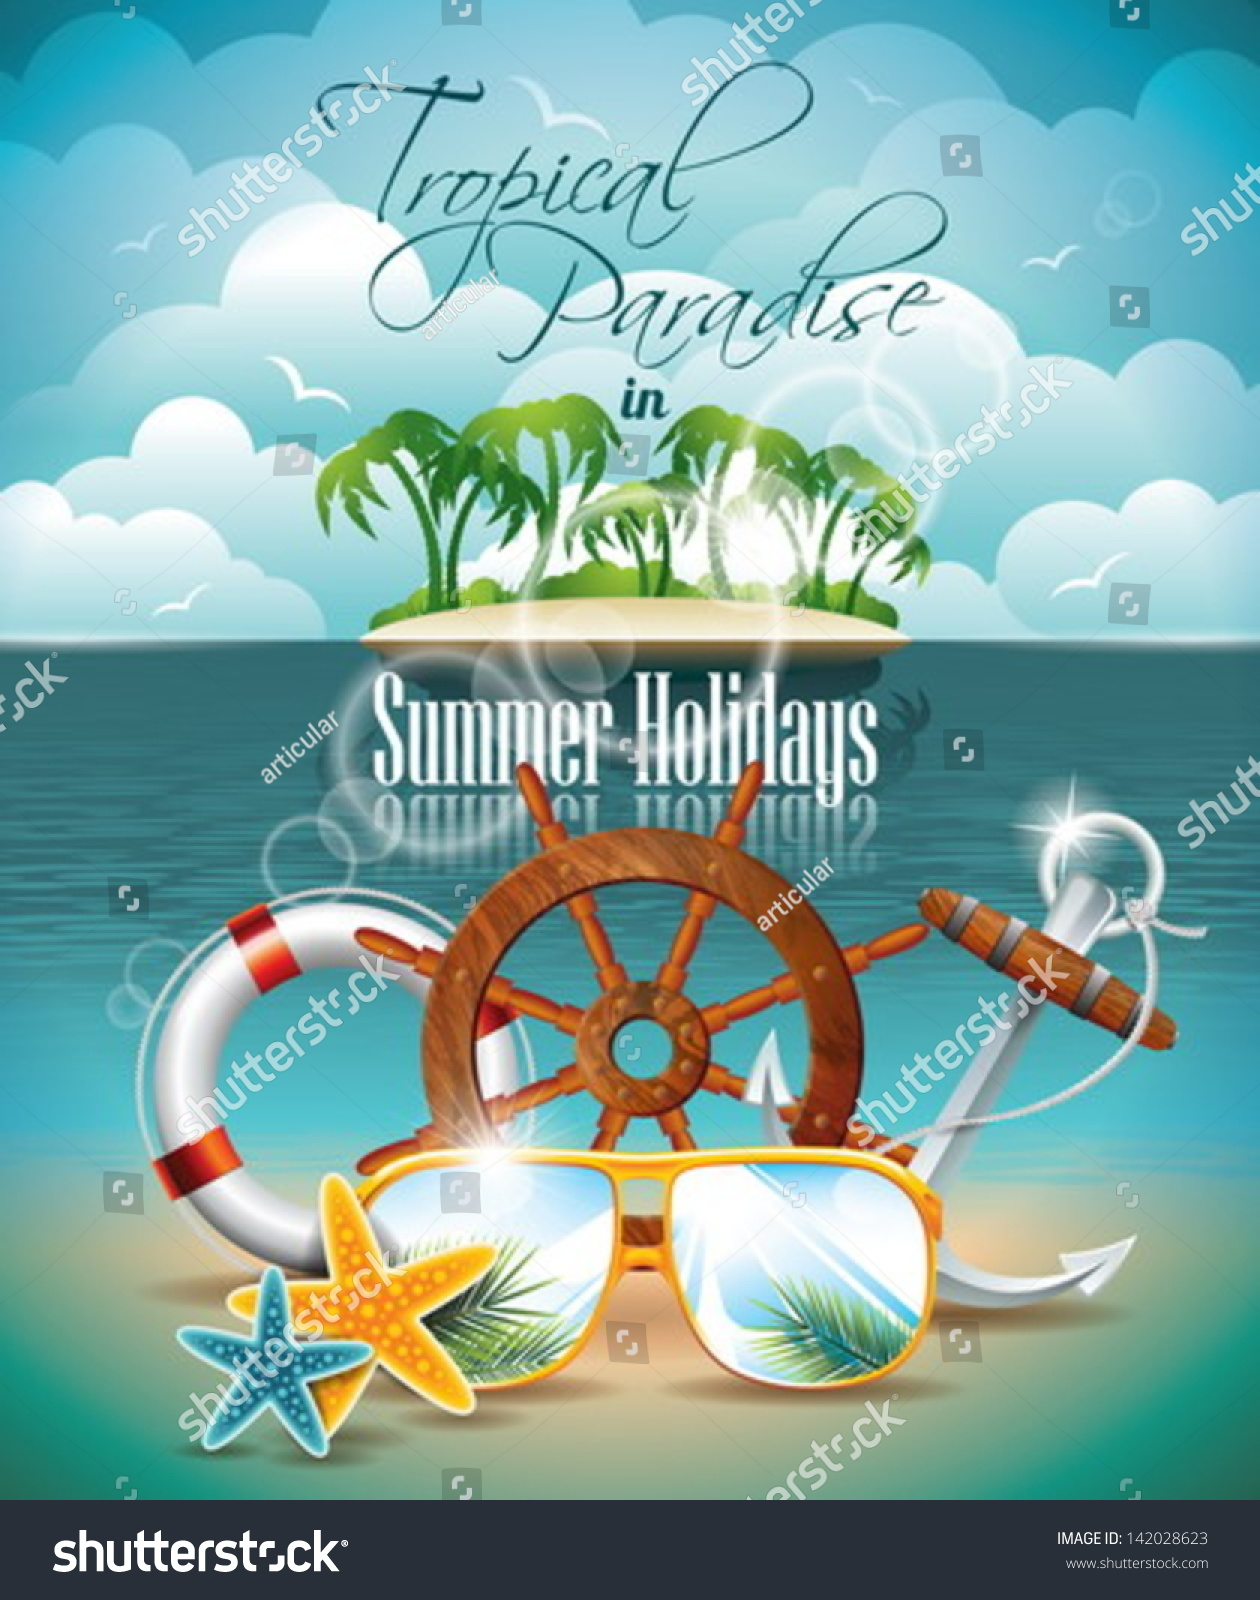 vector summer holiday flyer design palm stock vector  vector summer holiday flyer design palm trees and shipping elements on tropical background eps10